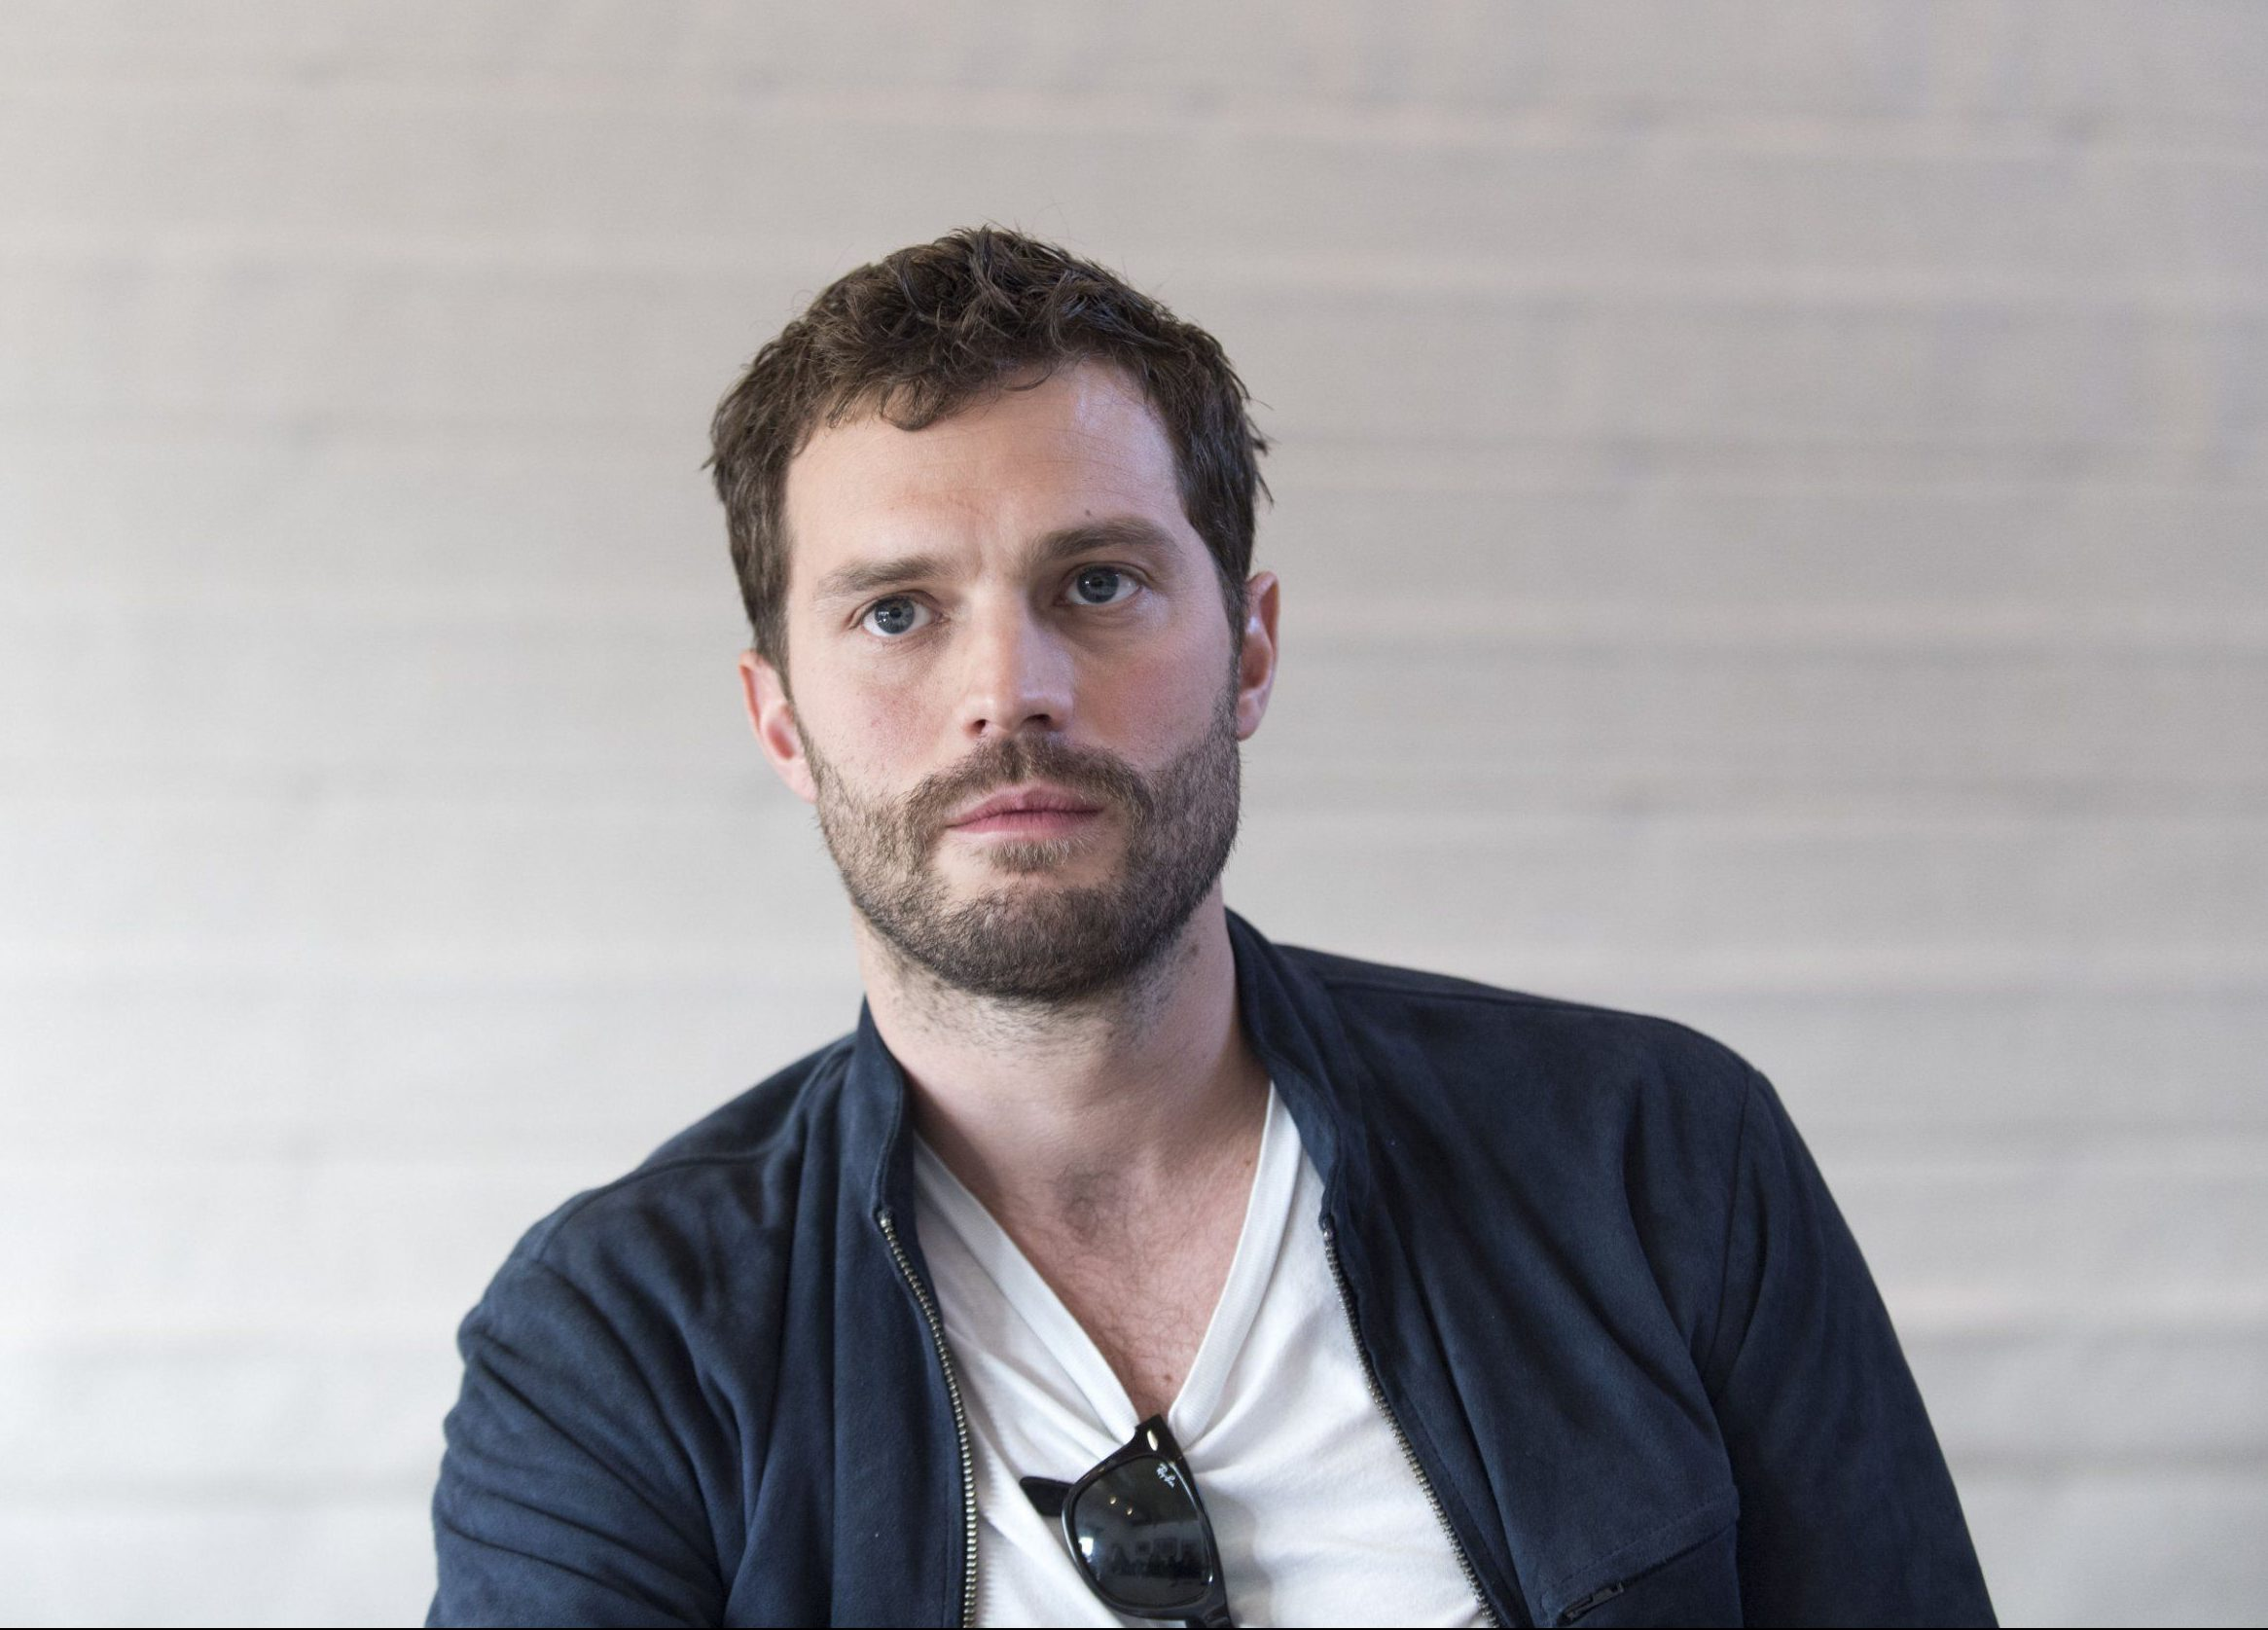 Jamie Dornan reveals Brexit fears keep him awake at night as he fears for Northern Ireland